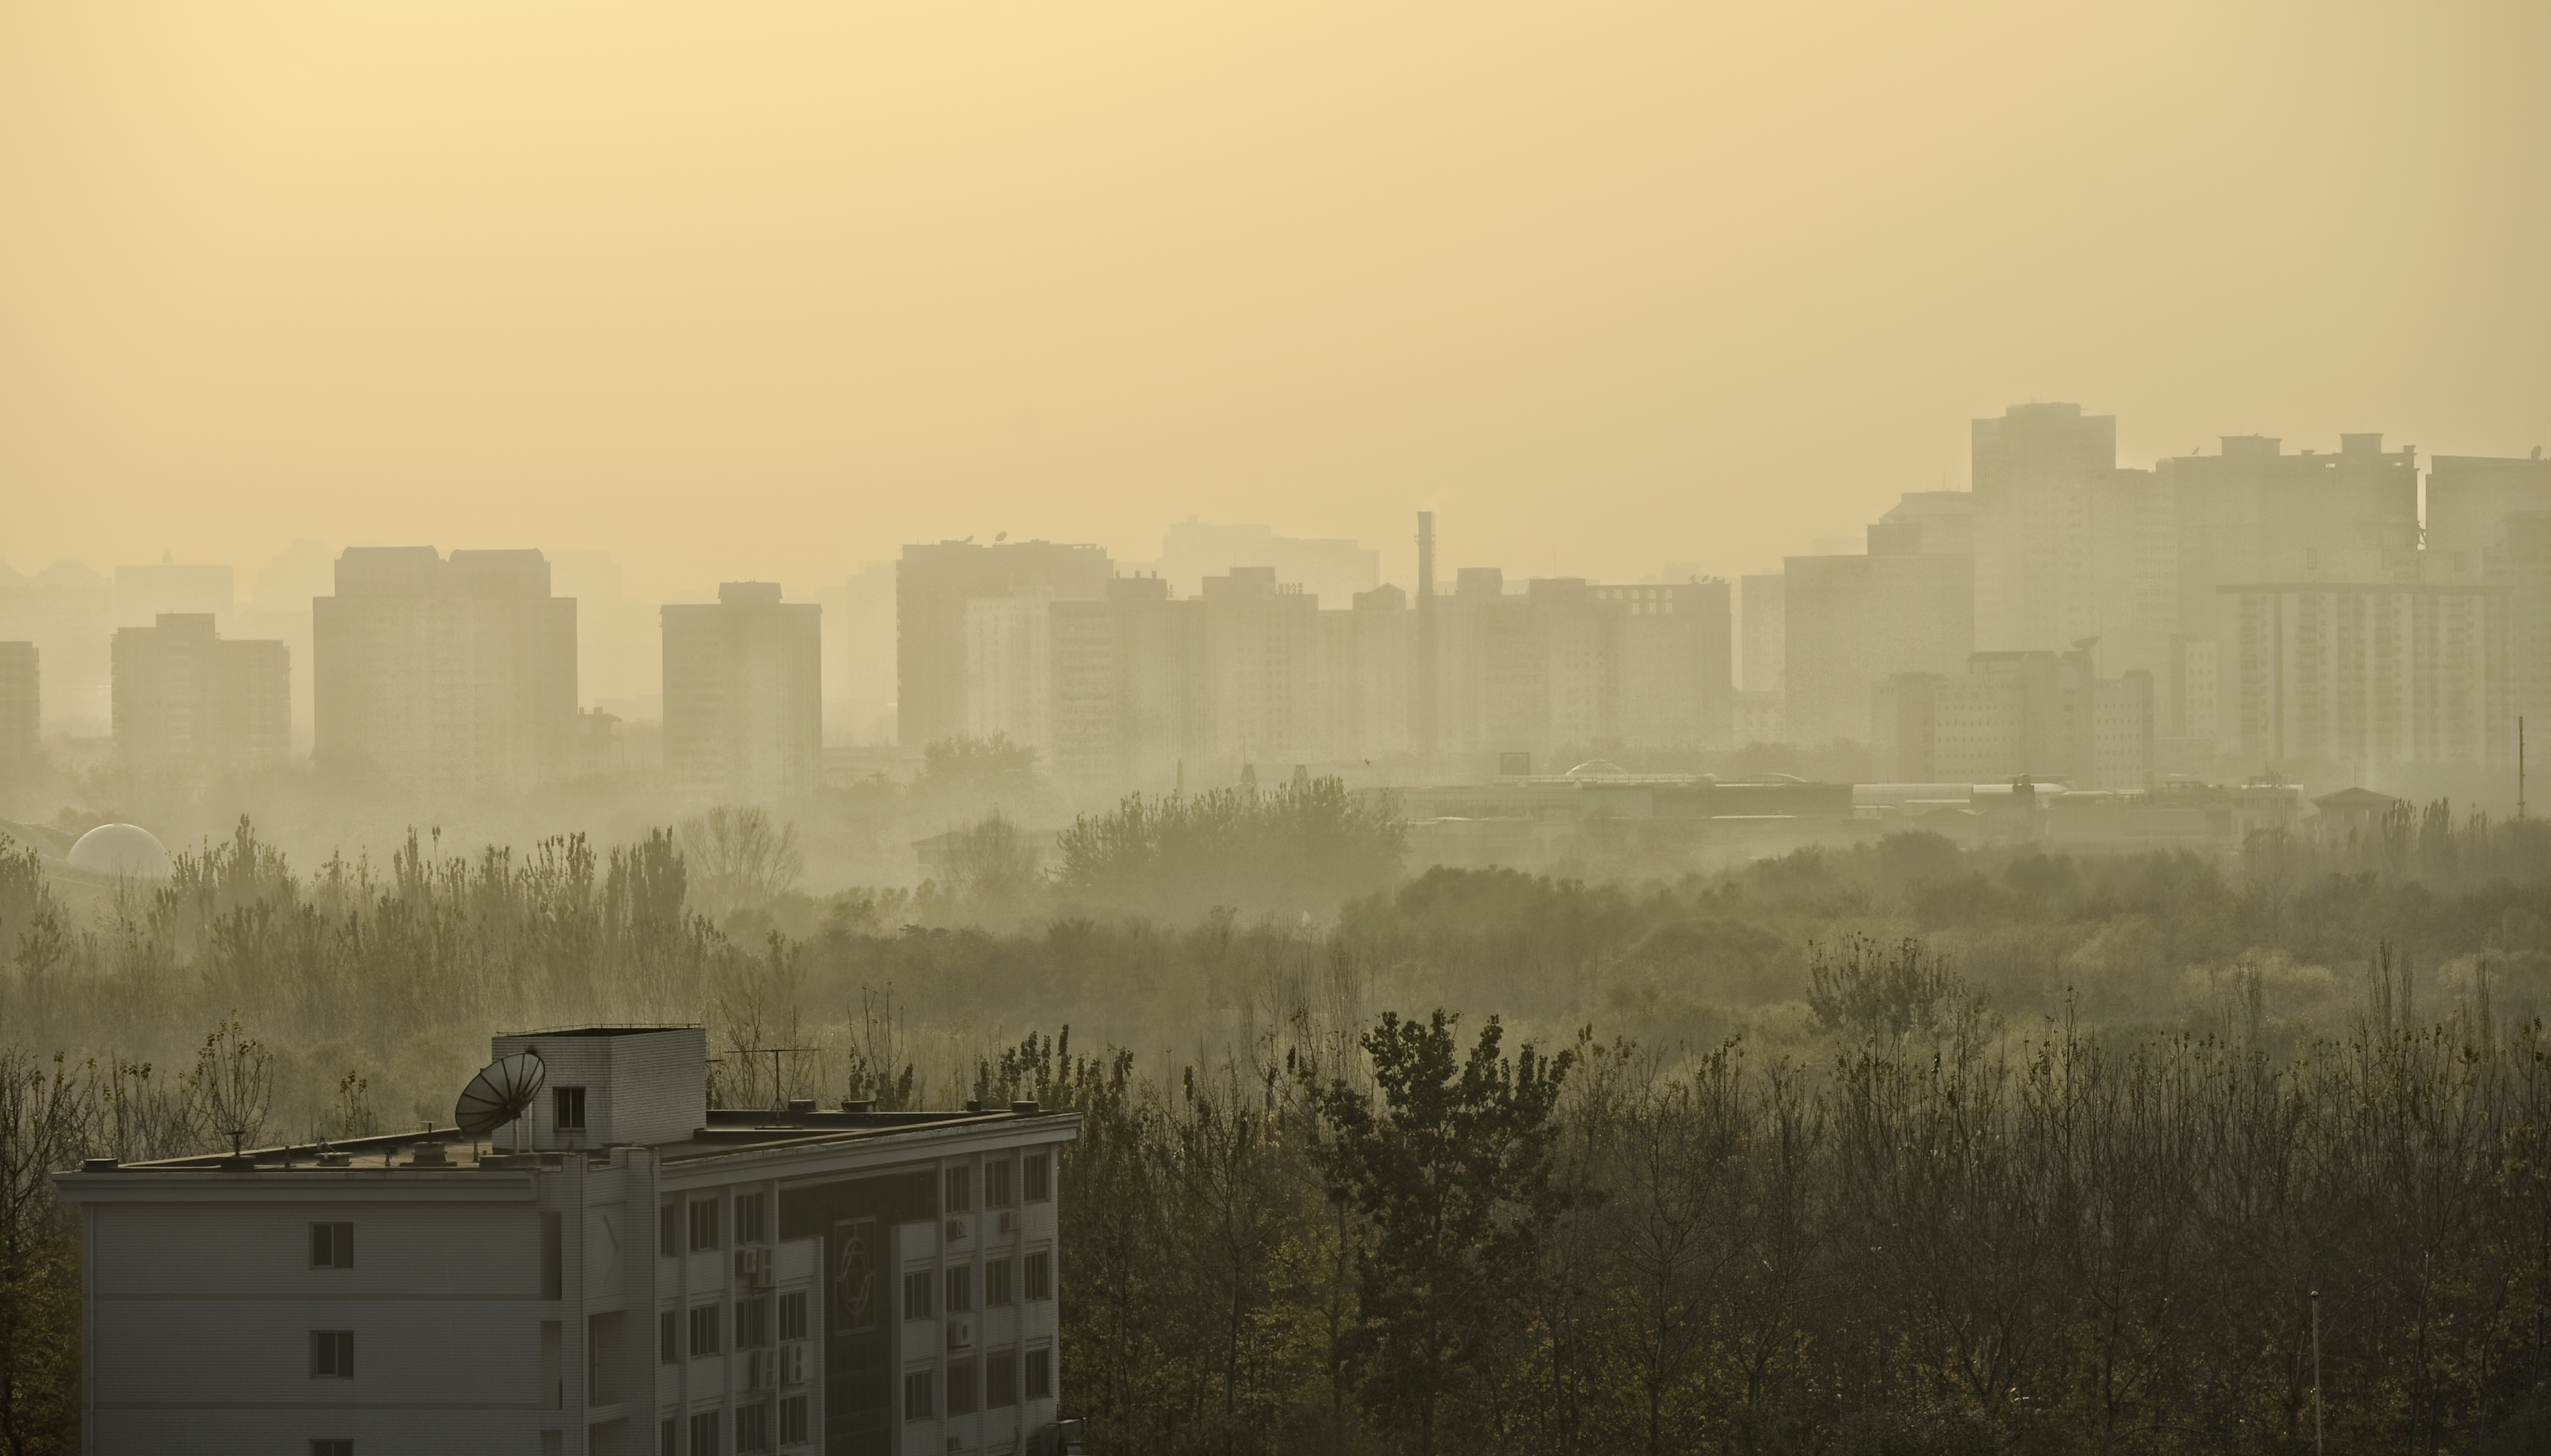 Texas A&M meteorology researchers part of Beijing pollution study